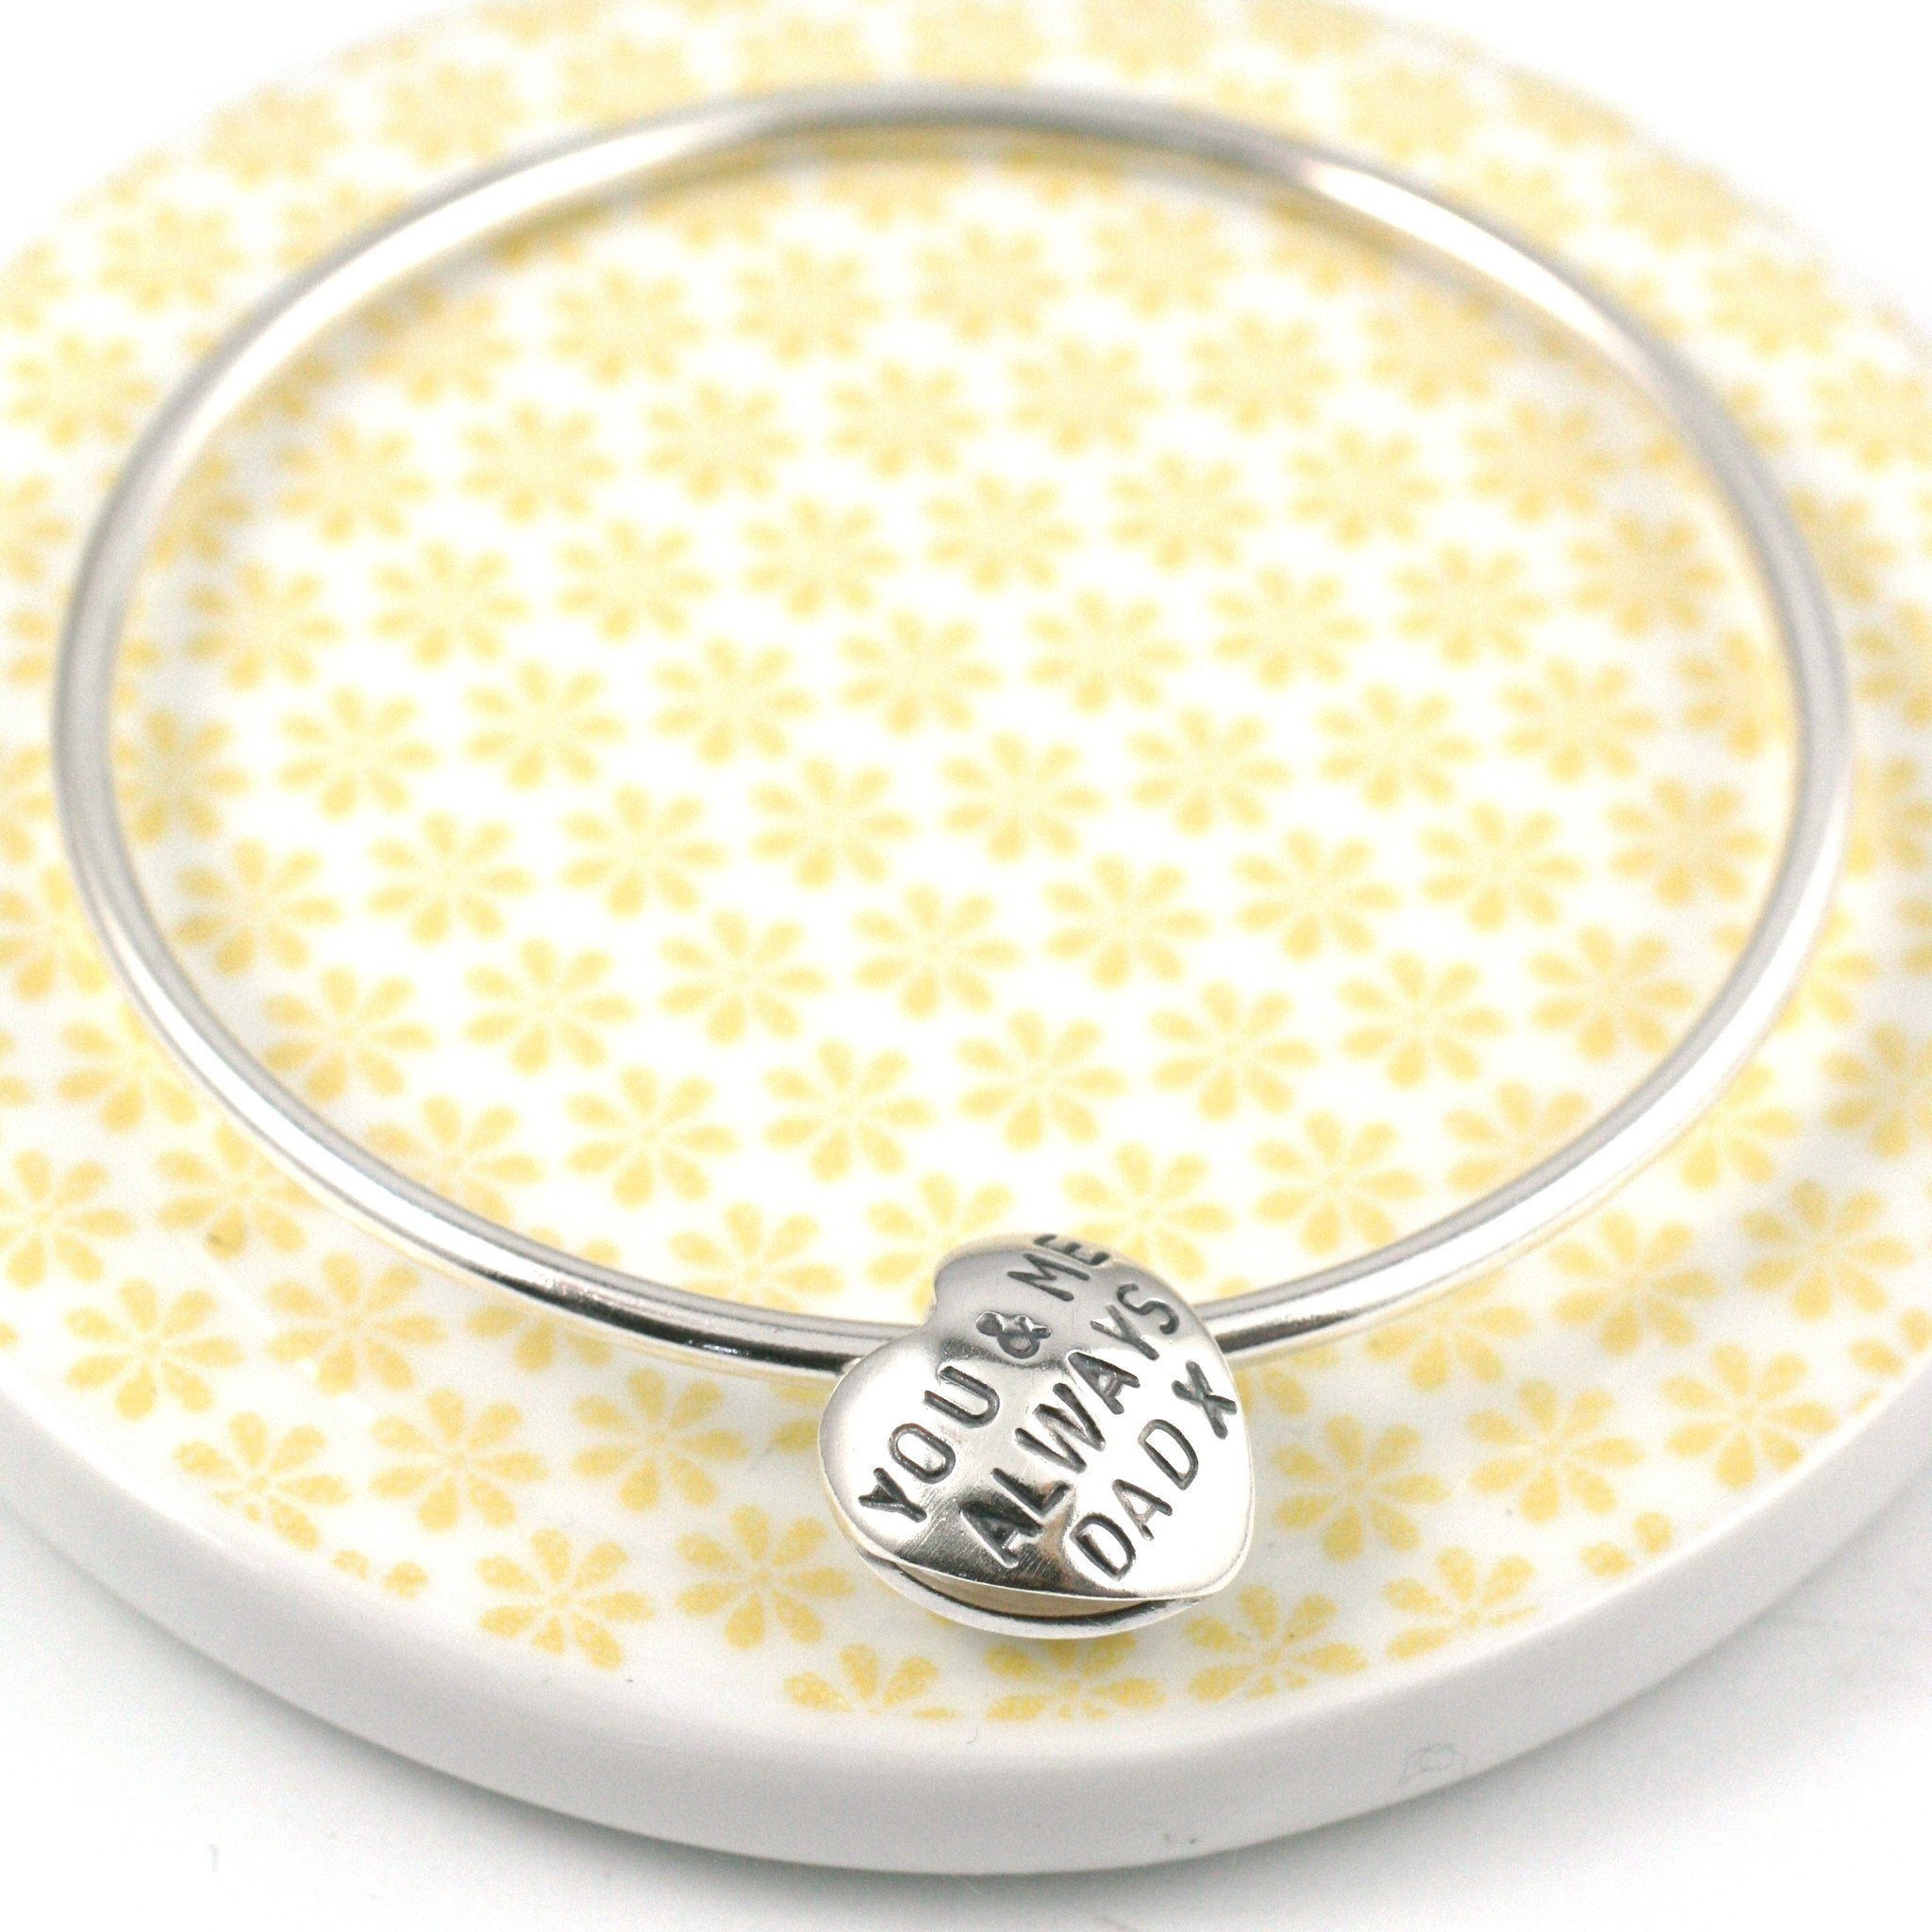 engraved bracelet for her